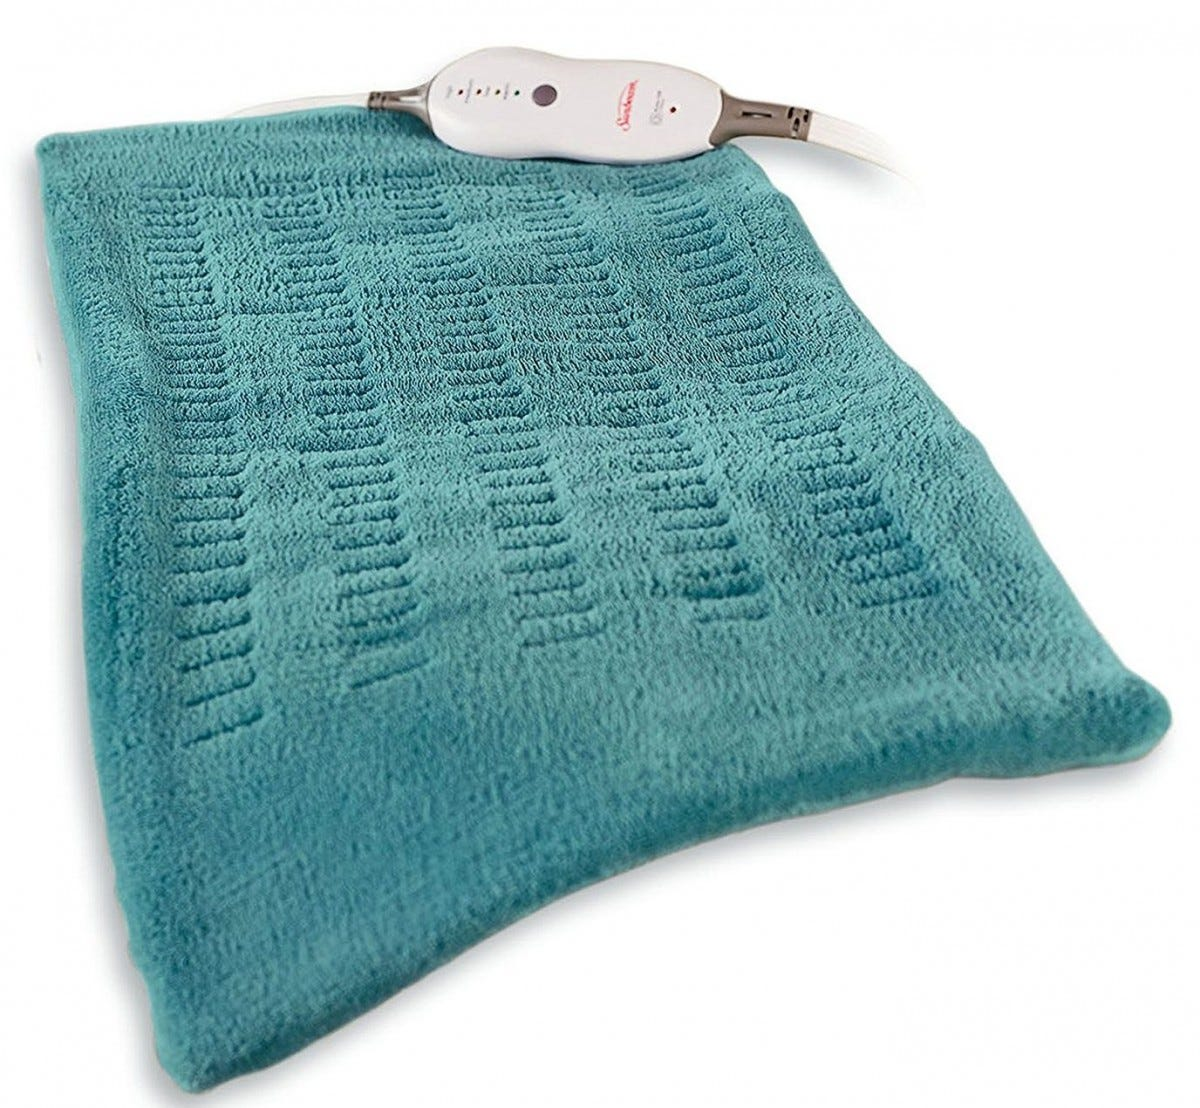 Looking For A General Purpose Heating Pad At Great Price The Sunbeam King Size Microplush Which Is 12 X 24 Our Best Overall Pick